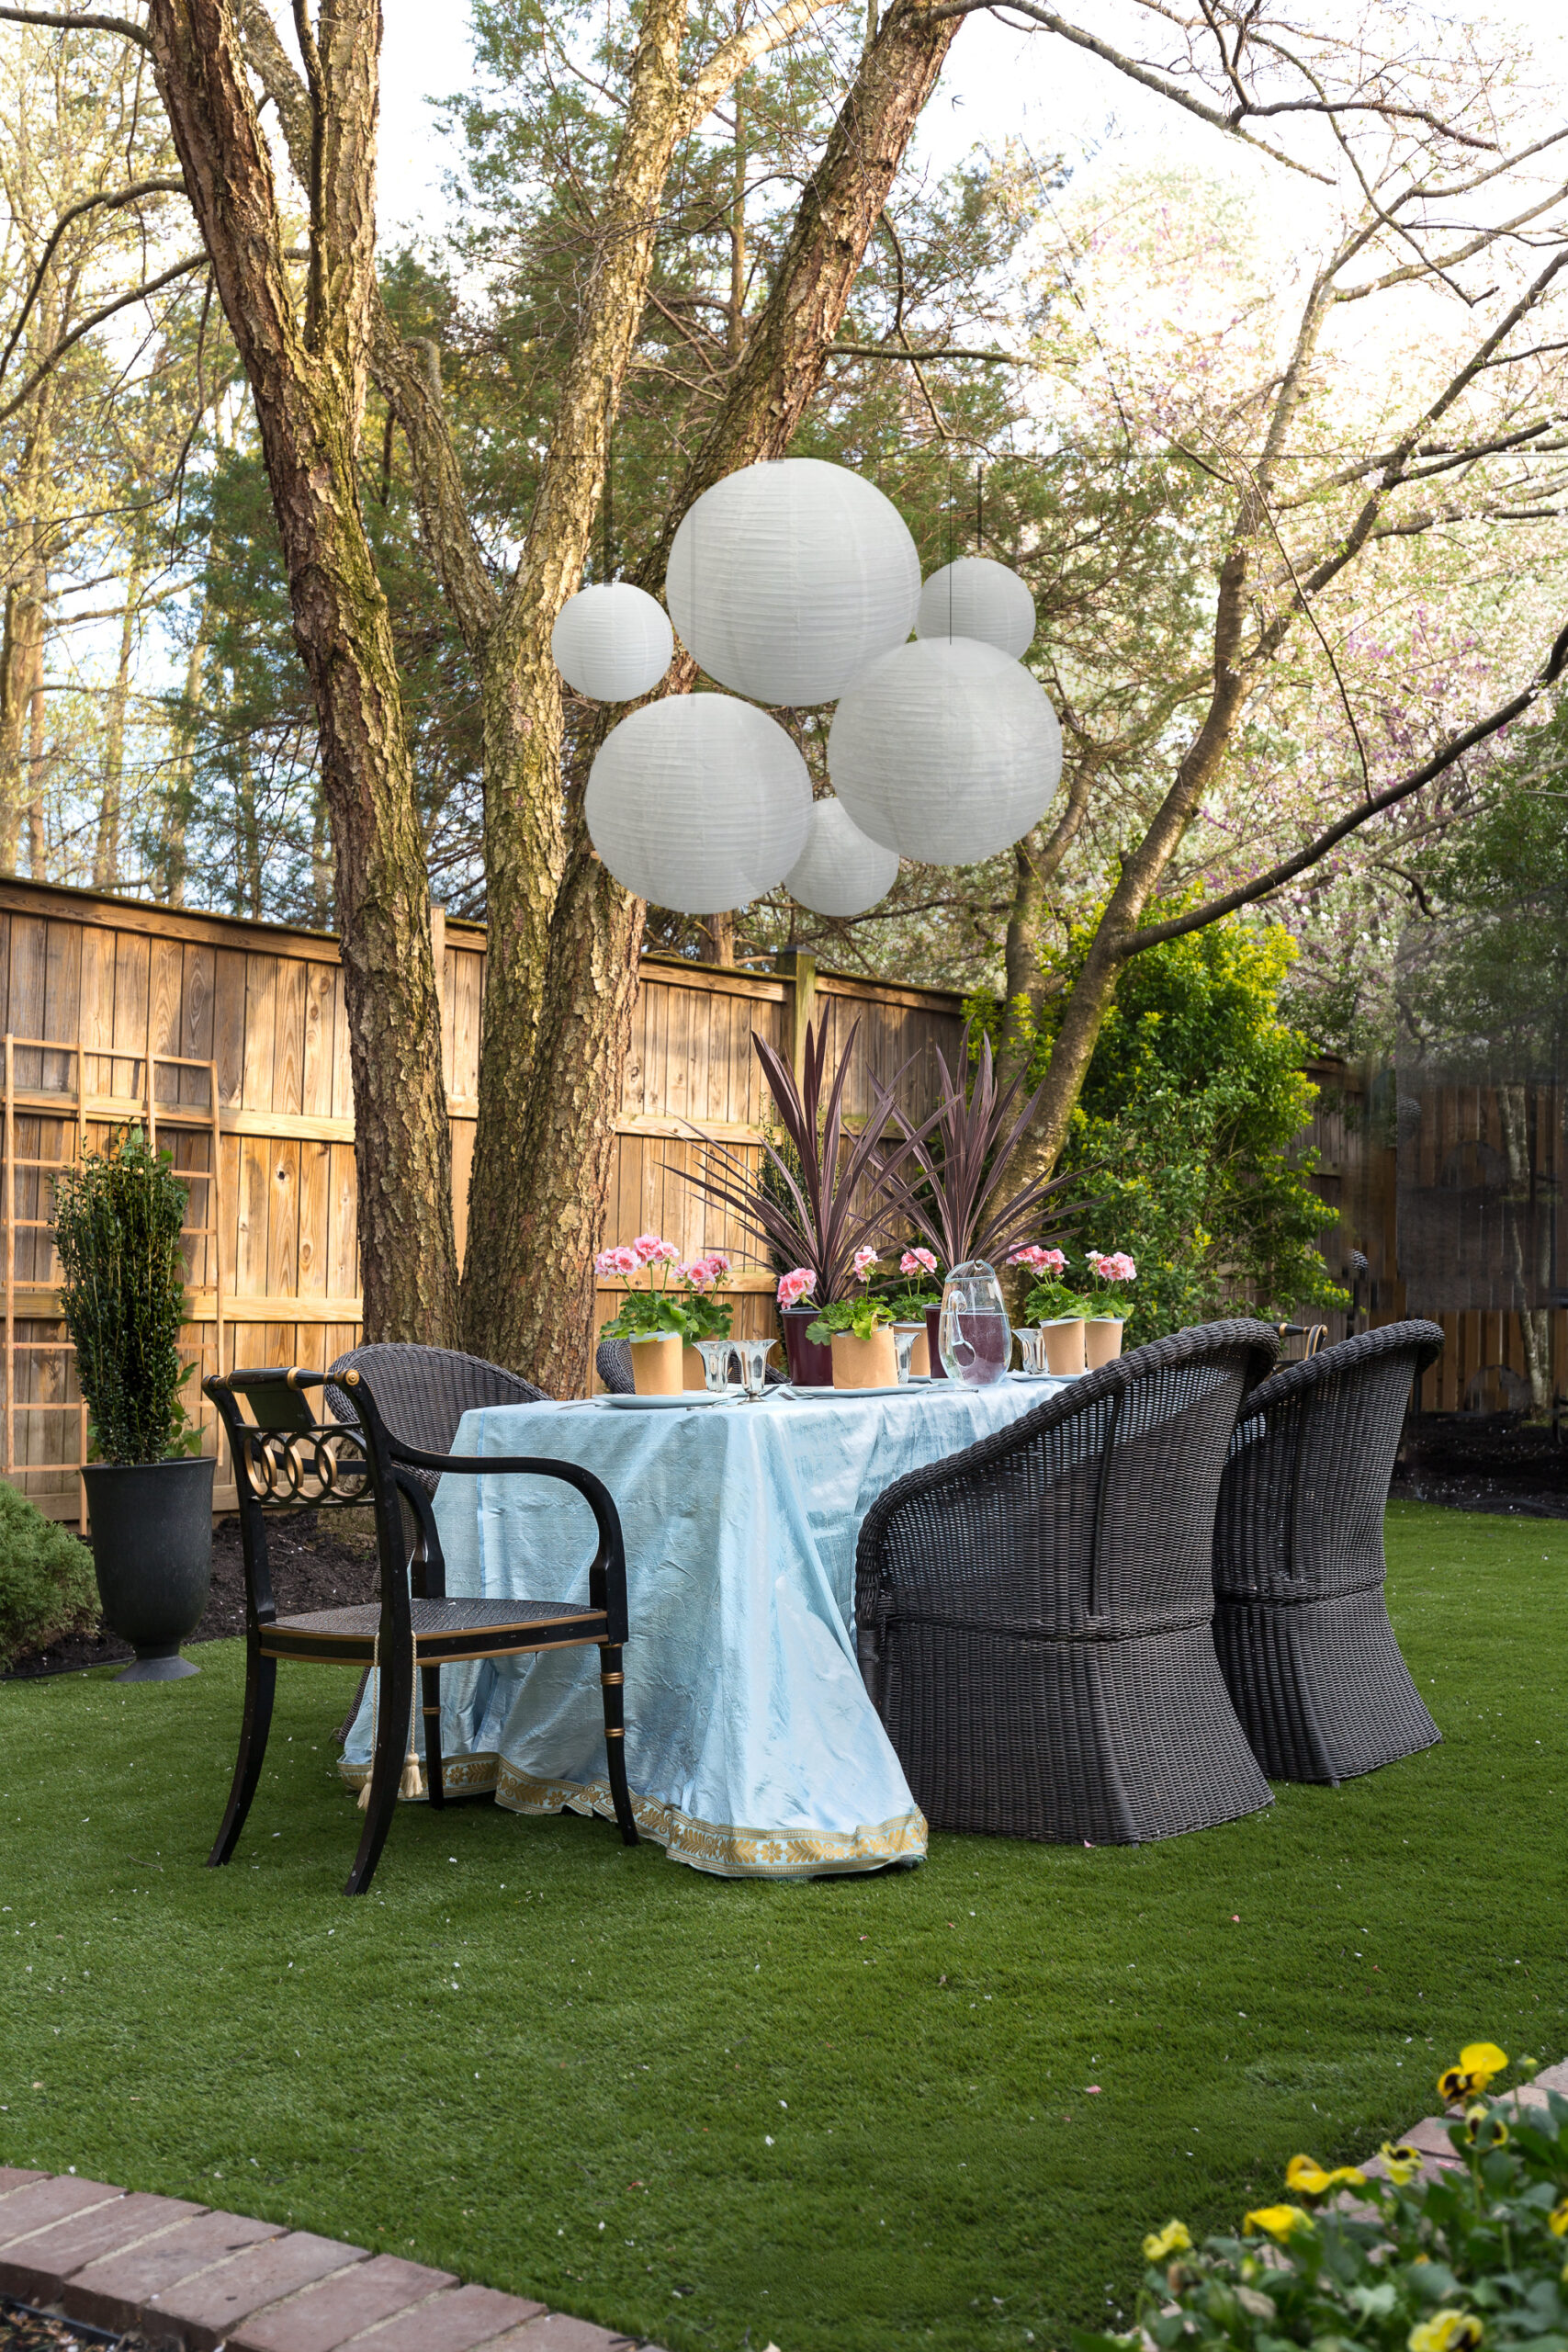 artificial grass, turf, imitation grass, backyard, backyard turf, back yard, makeover, faux grass, outdoor party, silk tablecloth, wedding, backyard party, Chinese lanterns